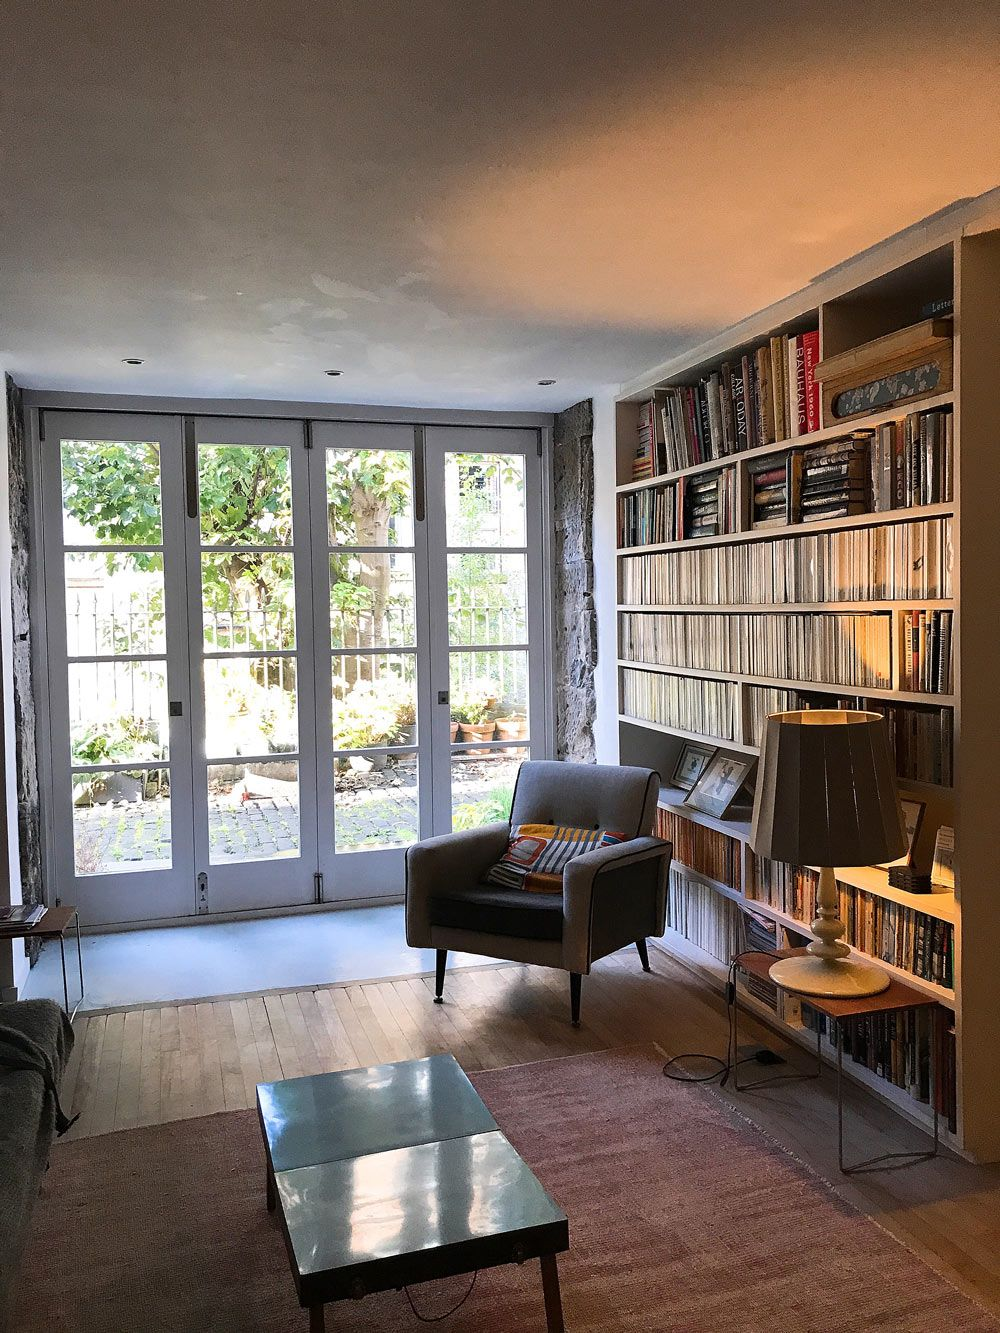 A Weekend In Glasgow The Little Guide Living Room Goals Home Room Goals The living rooms glasgow